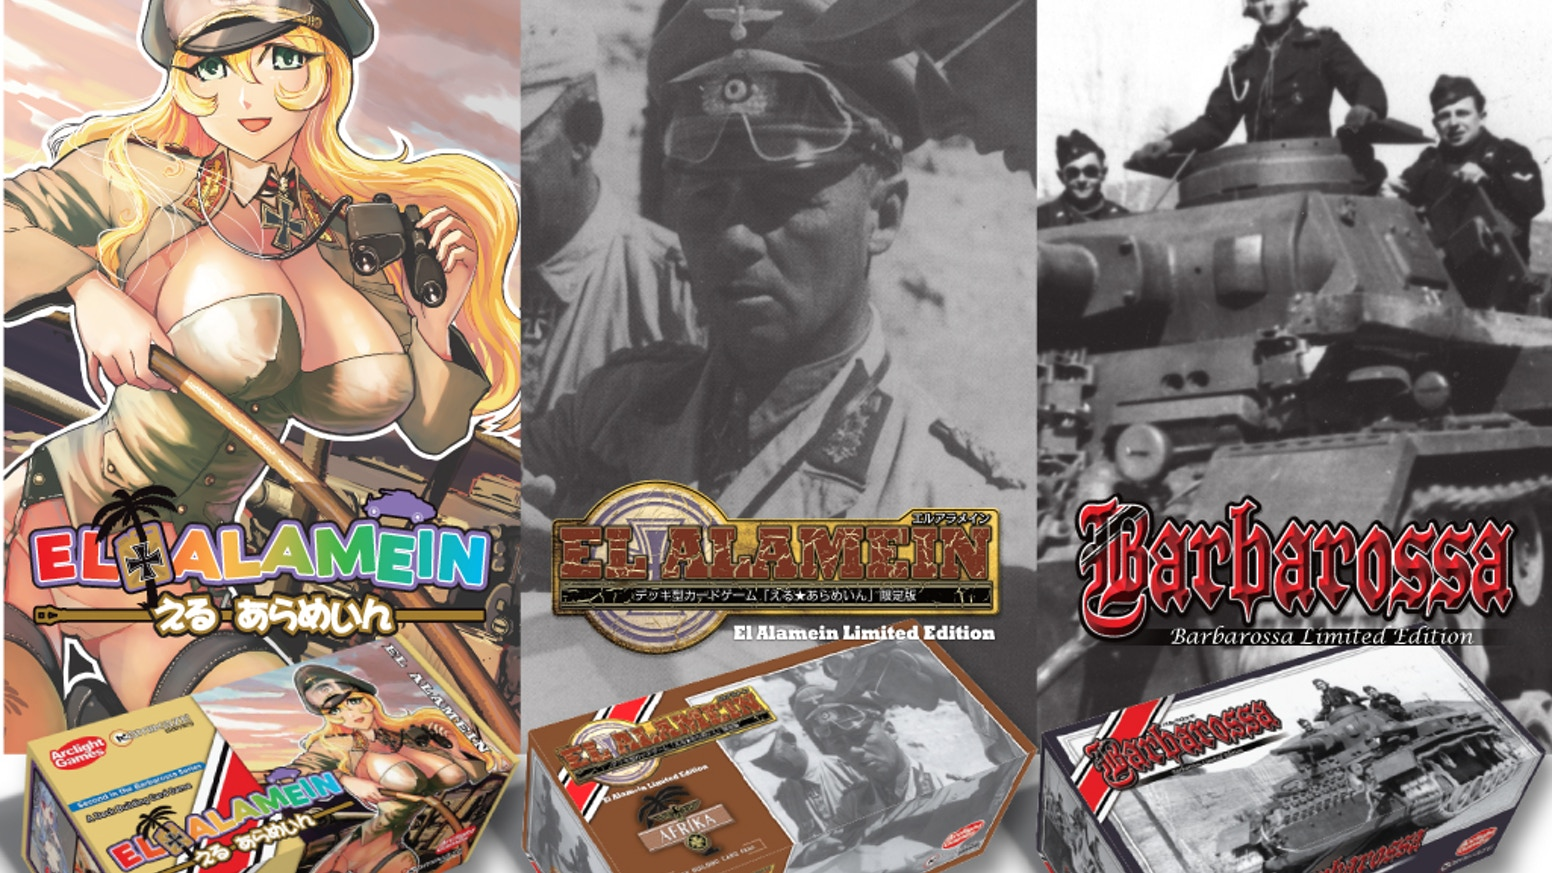 El Alamein Anime Card Game From Japan By Kamikaze Games Kickstarter